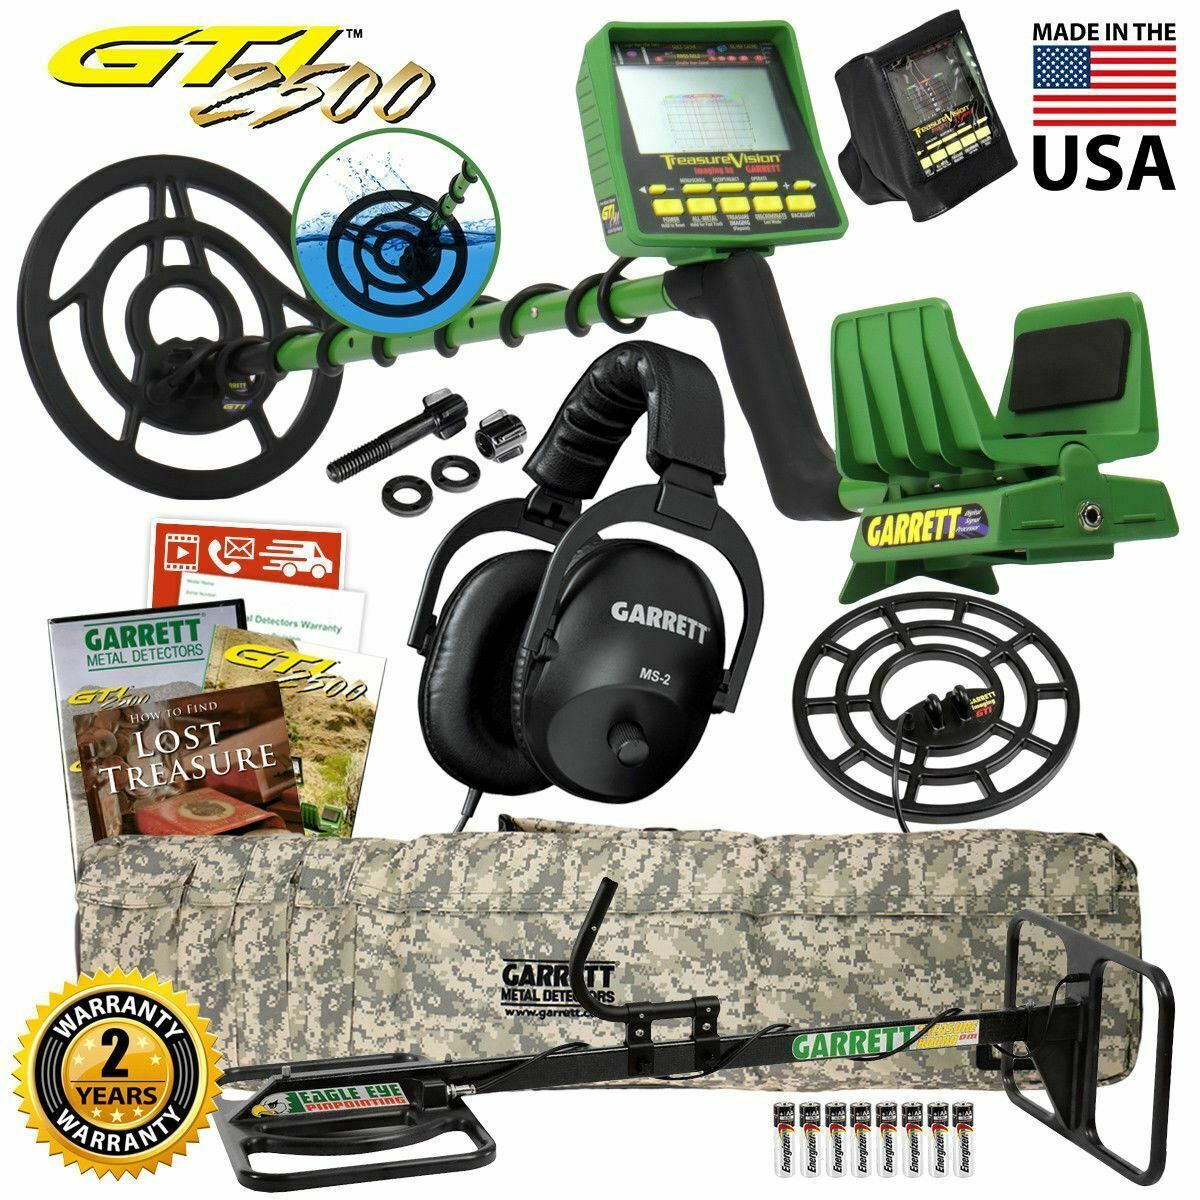 NEW Garrett GTI 2500 Pro Package Metal Detector with TreasureHound Eagle Eye Coil